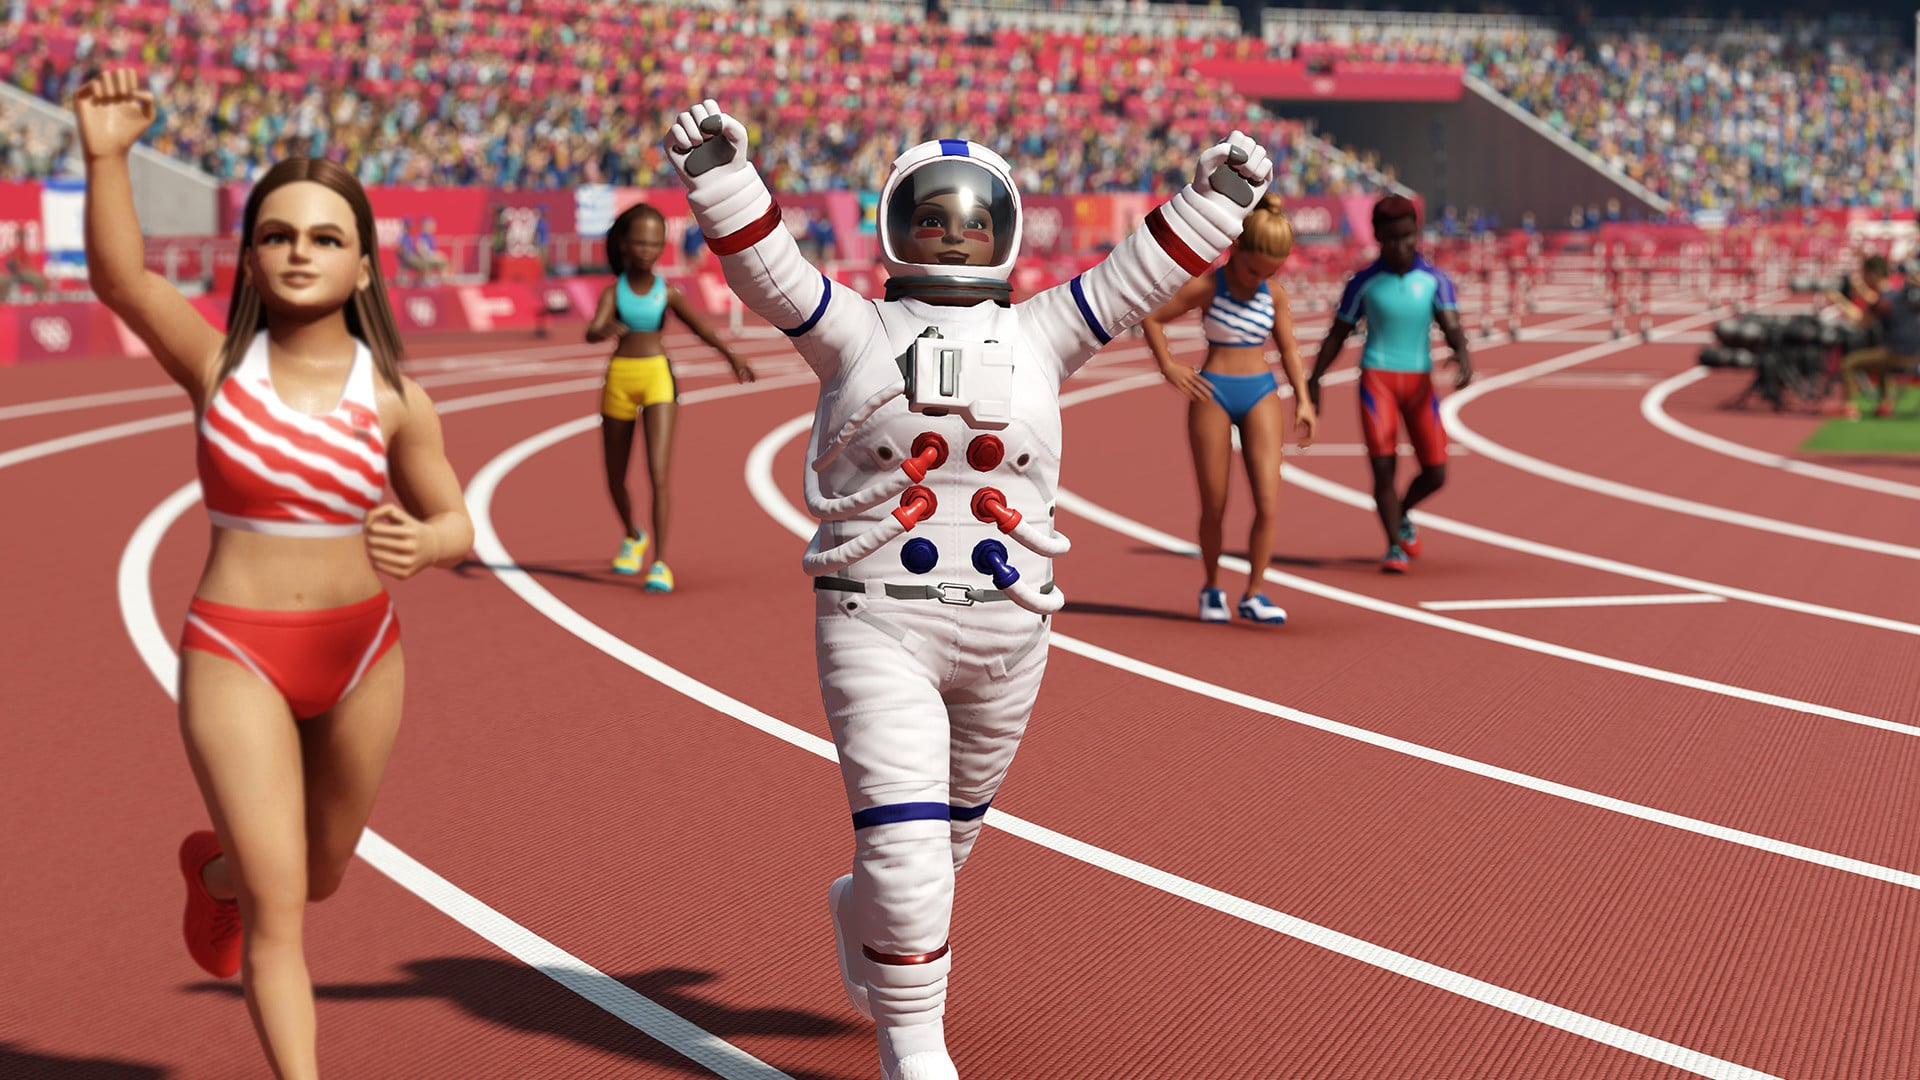 5 queer sports video games and characters, just in time for the Olympics